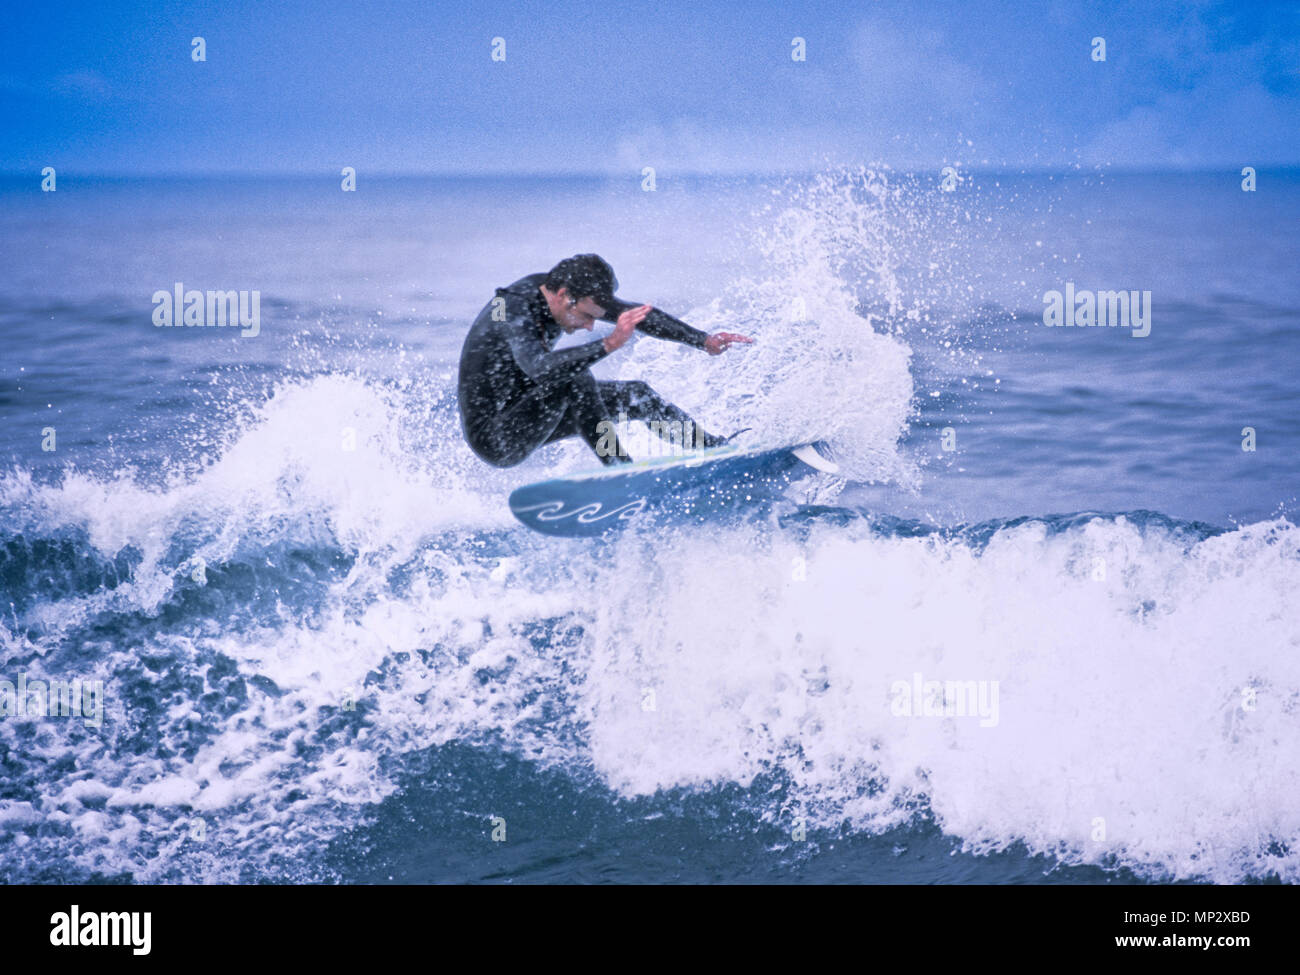 A surfer making moves on the California Coast. - Stock Image